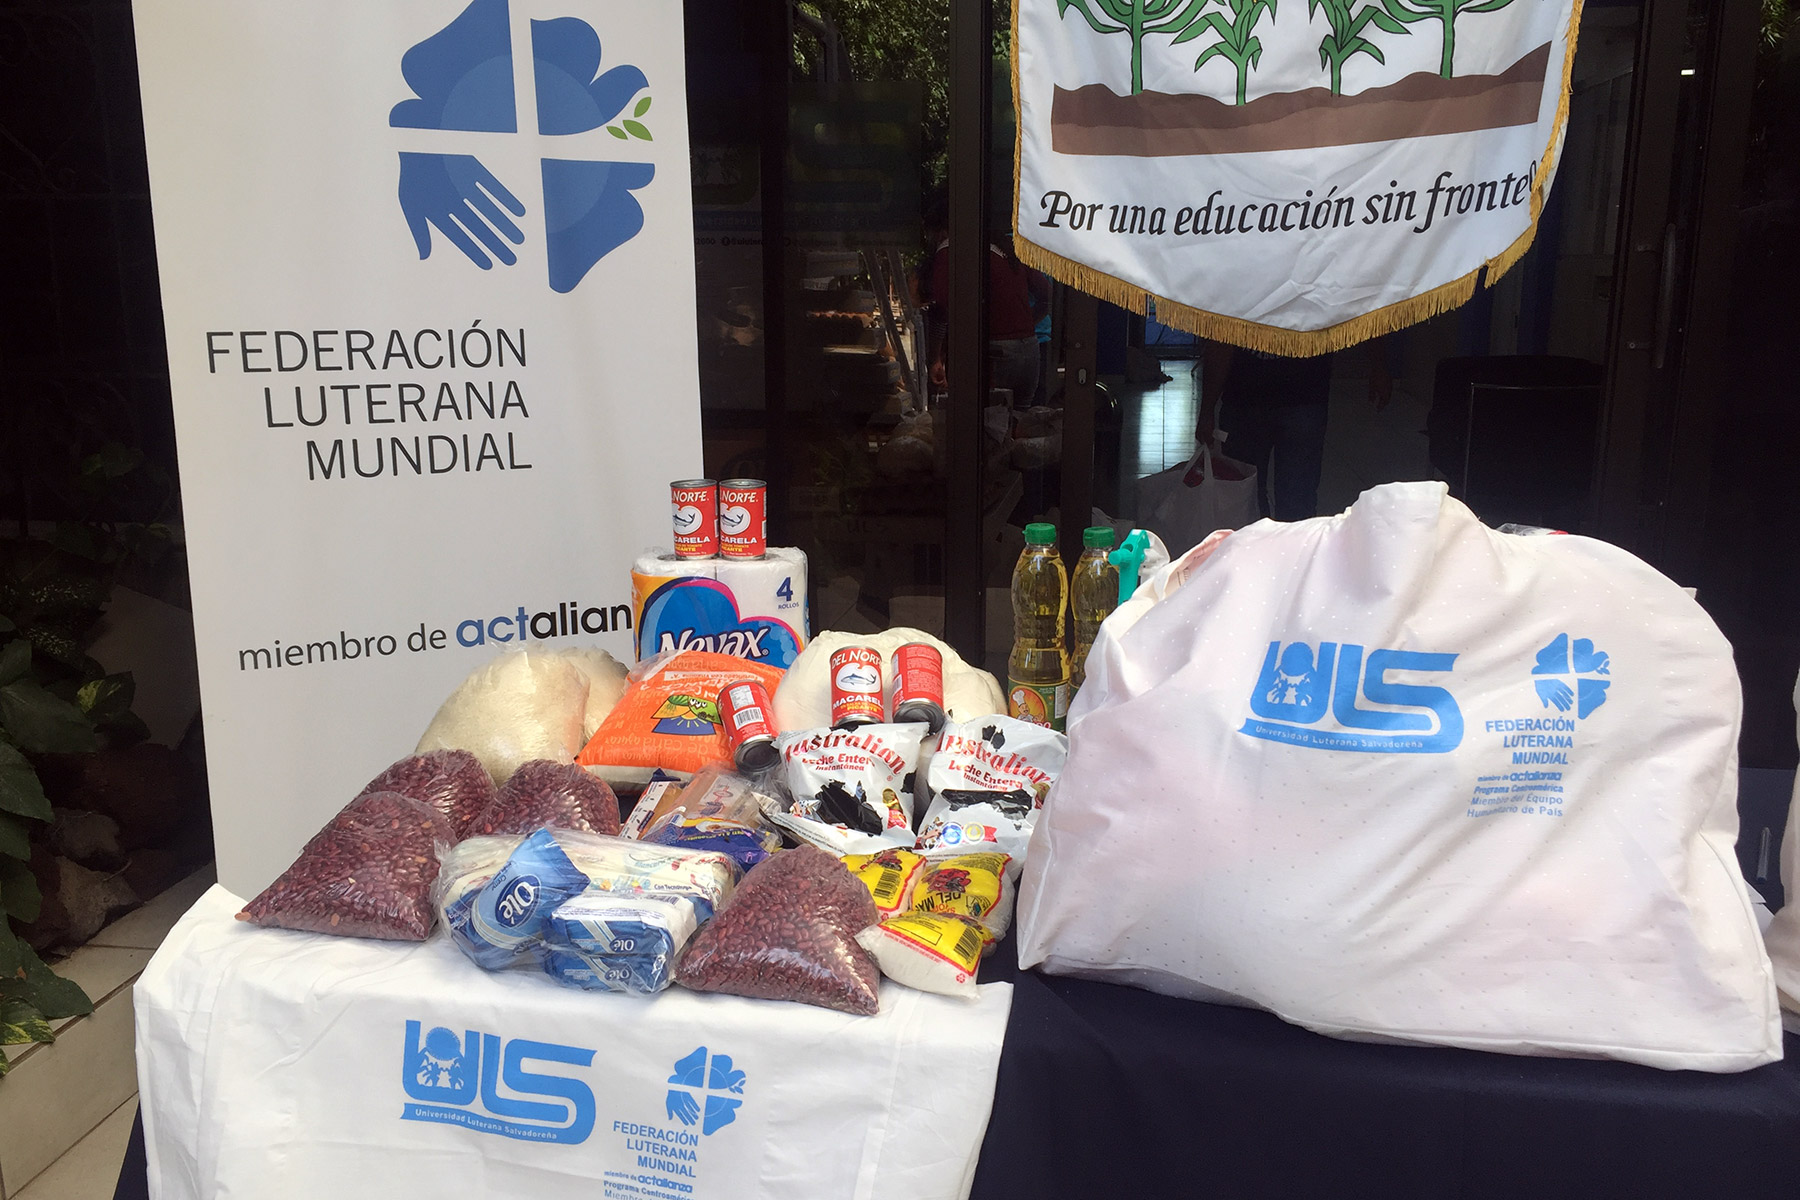 A typical food parcel. The bag contains food which supports 4-5 people for three weeks.